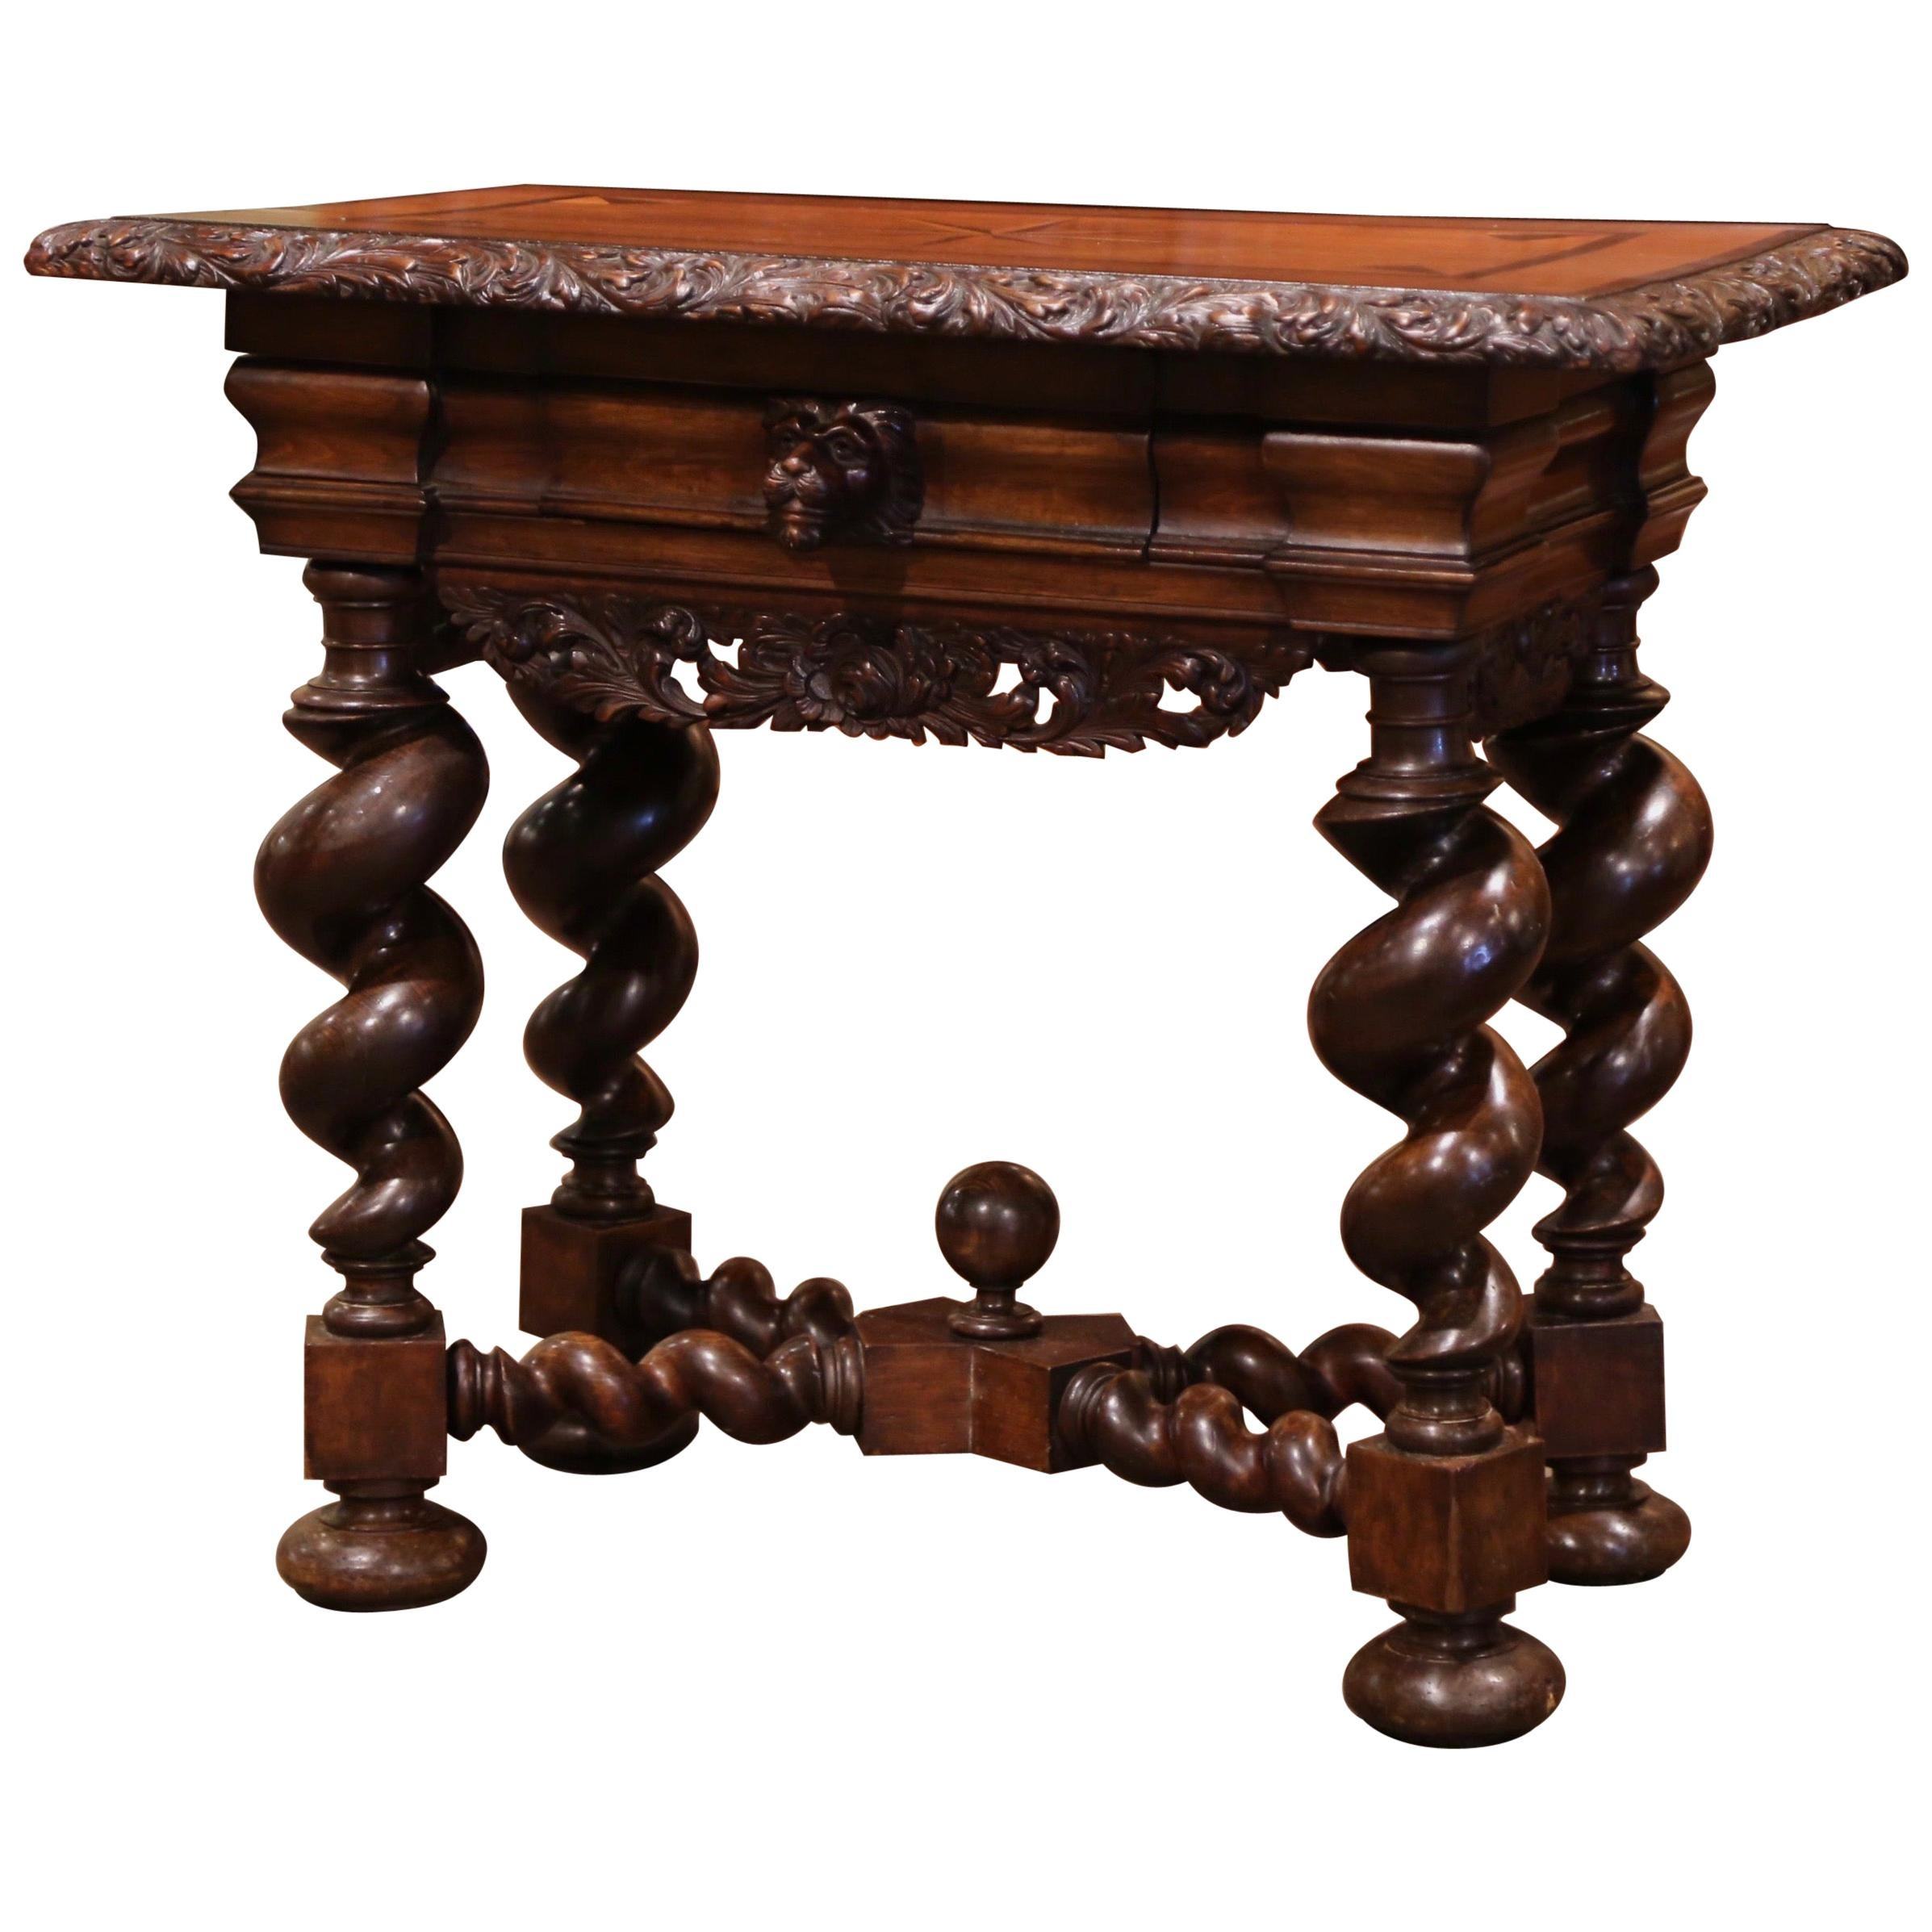 19th Century Italian Renaissance Carved Walnut and Inlay Side Table